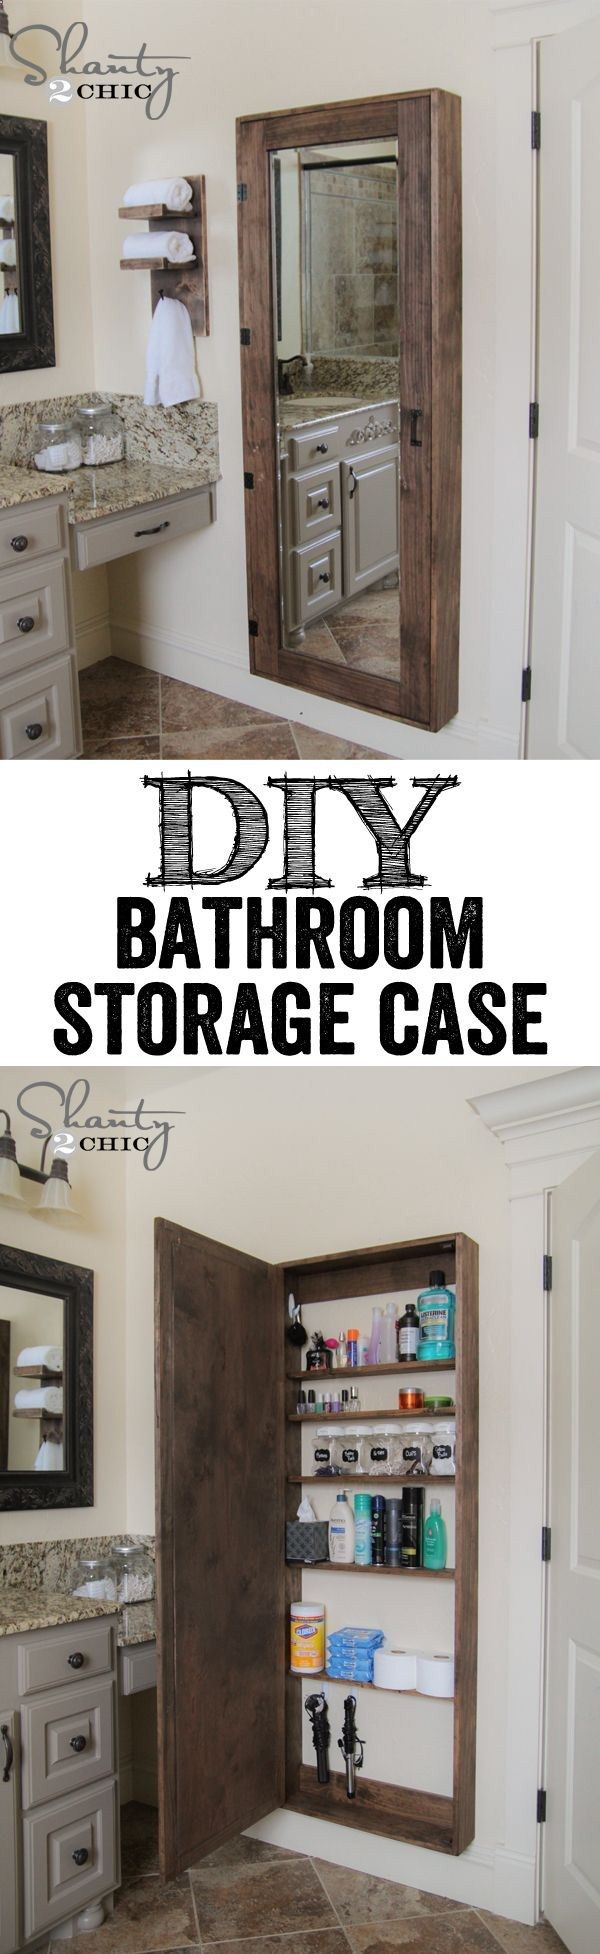 DIY Bathroom Organization Cabinet with full length mirror�. LEGENDARY IDEA!